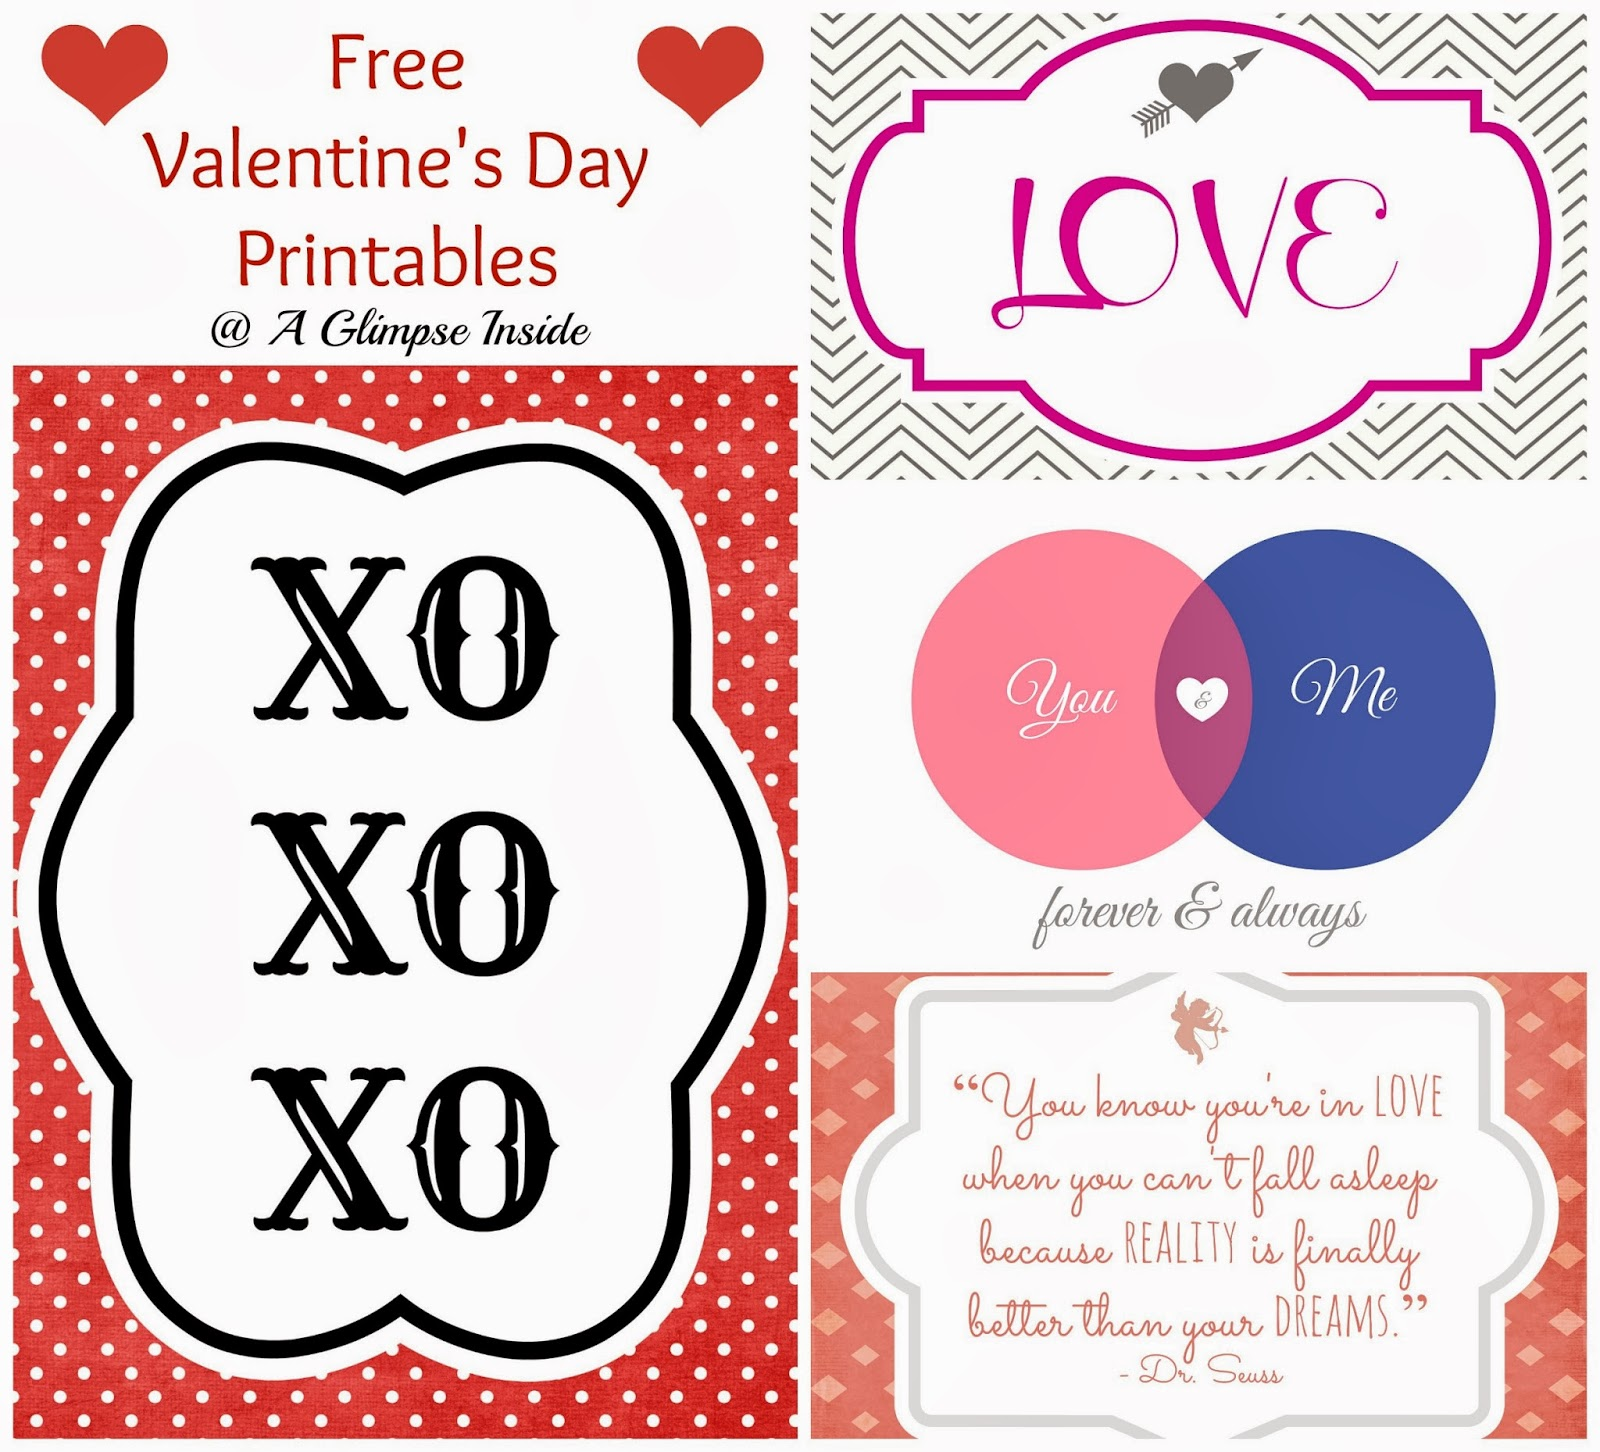 http://www.aglimpseinsideblog.com/2014/01/valentines-day-printables.html